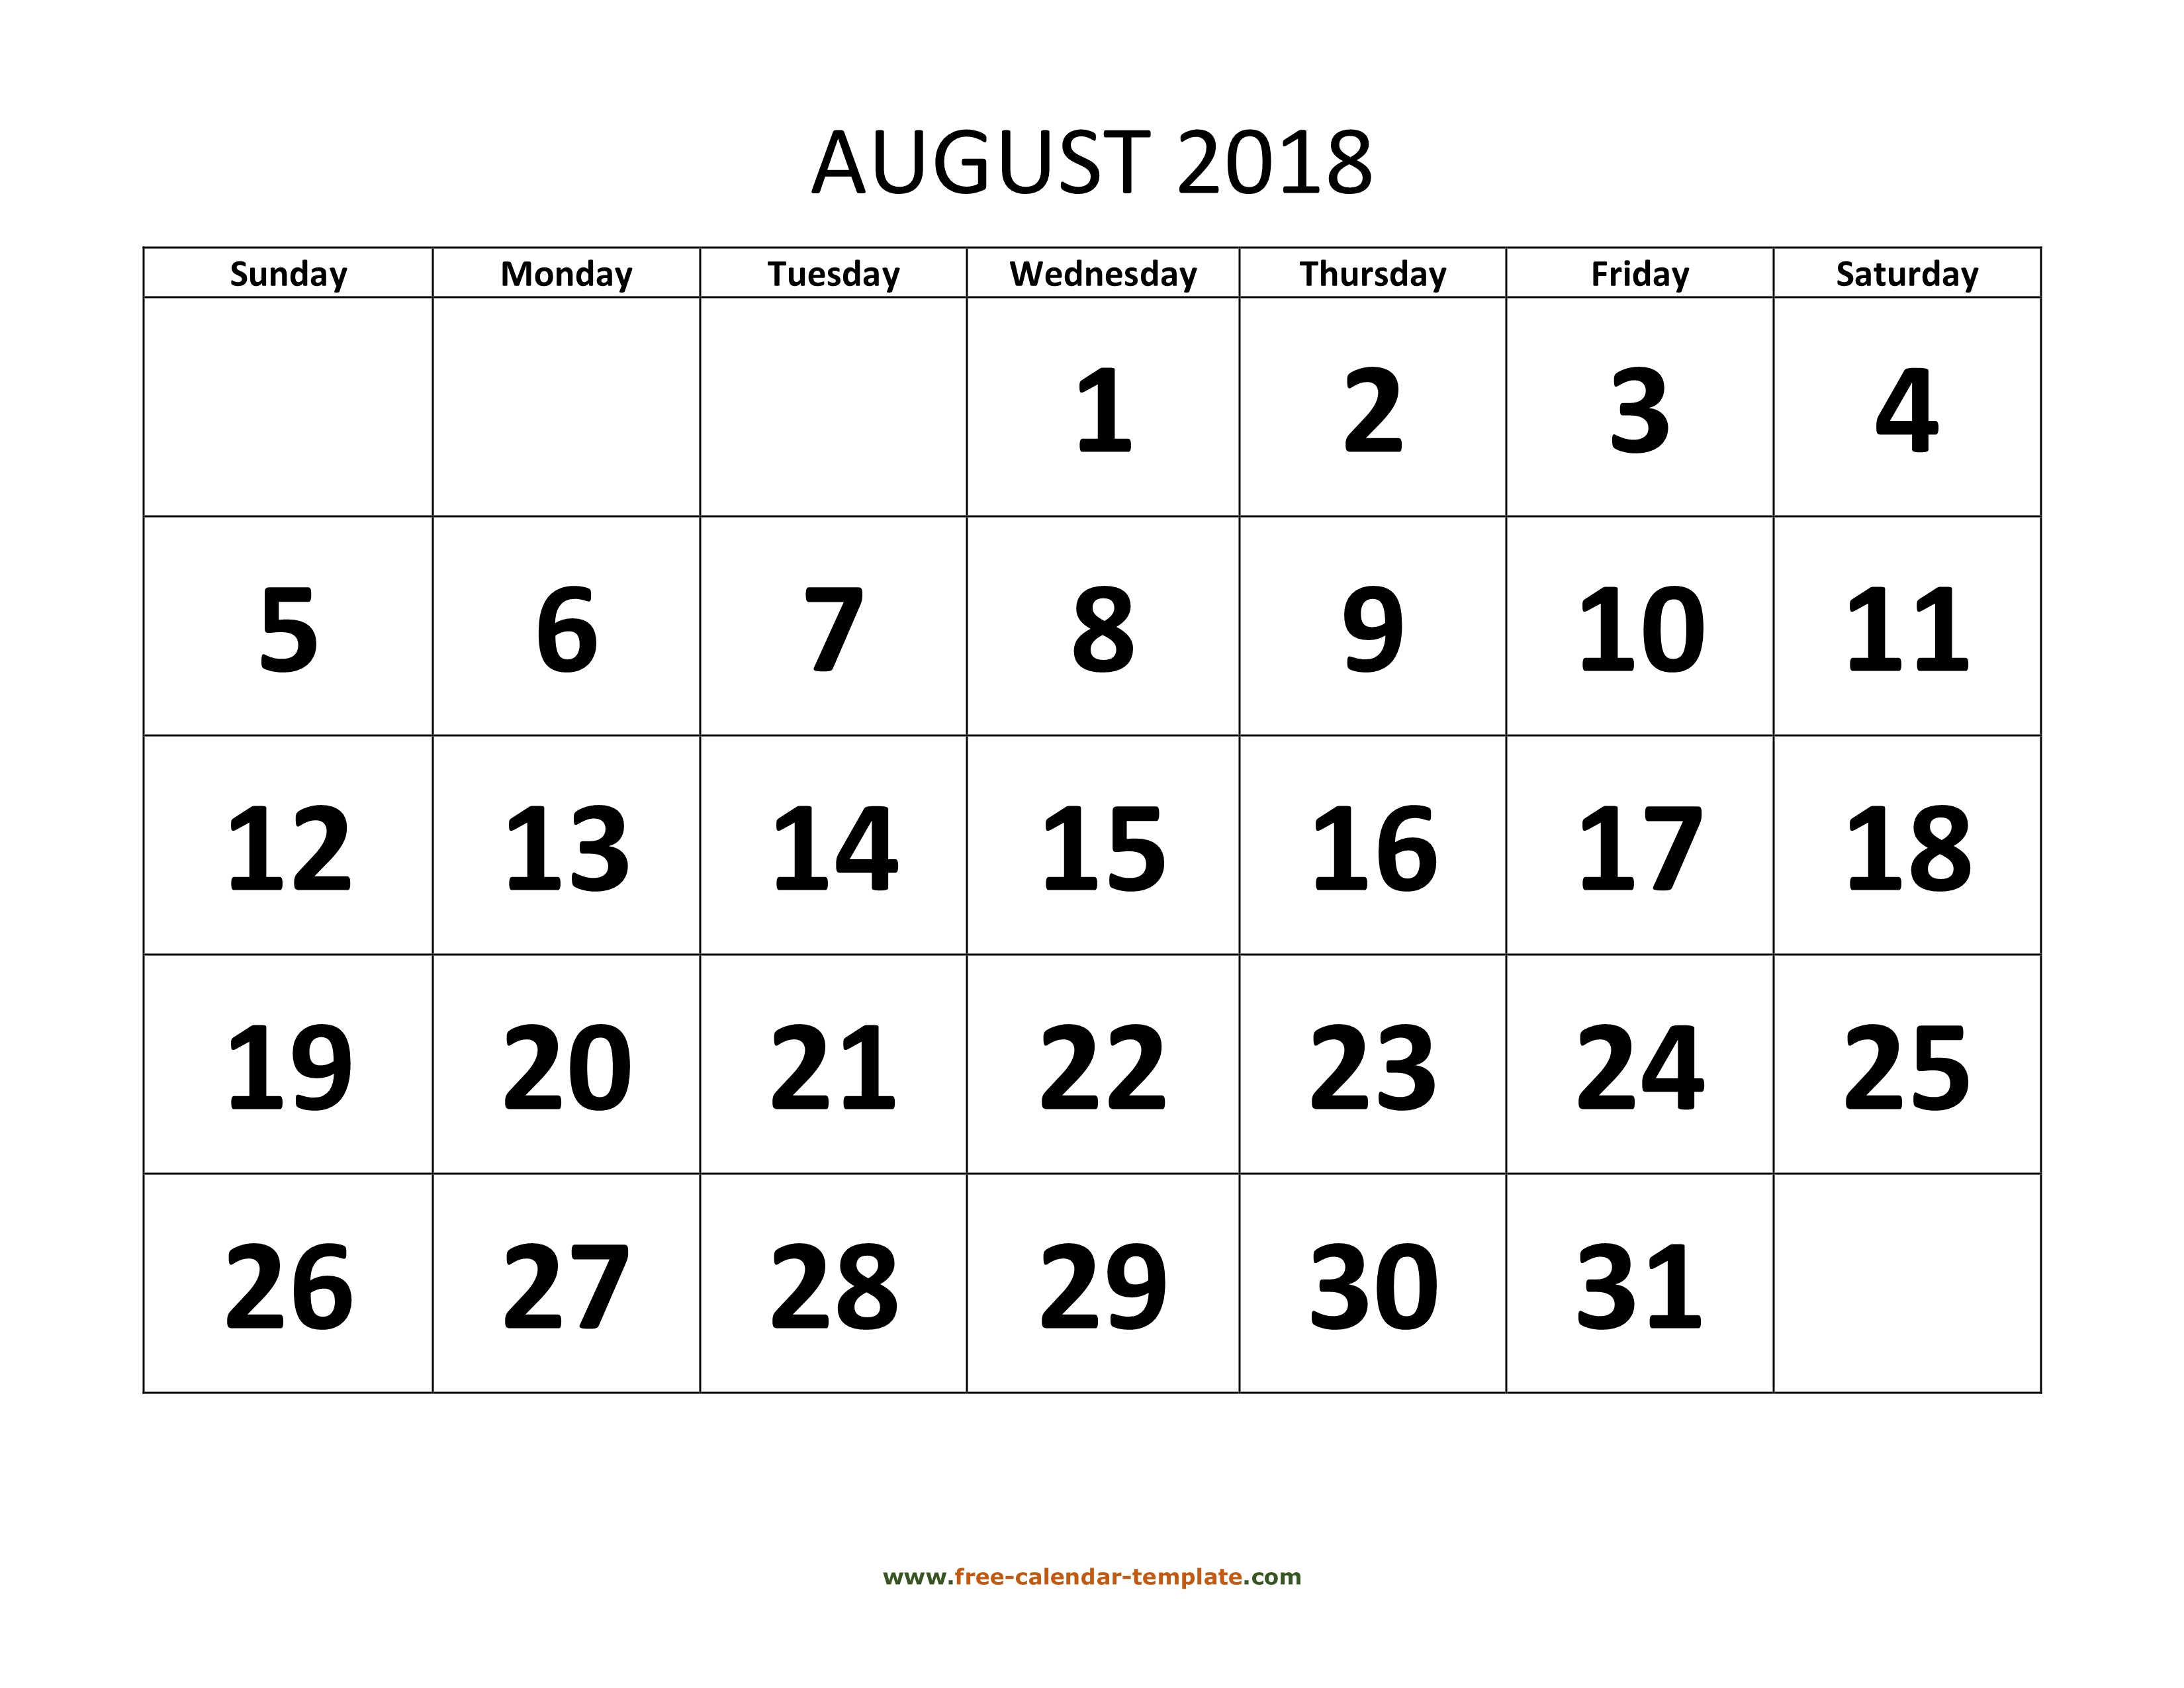 August 2018 Calendar Designed With Large Font (Horizontal